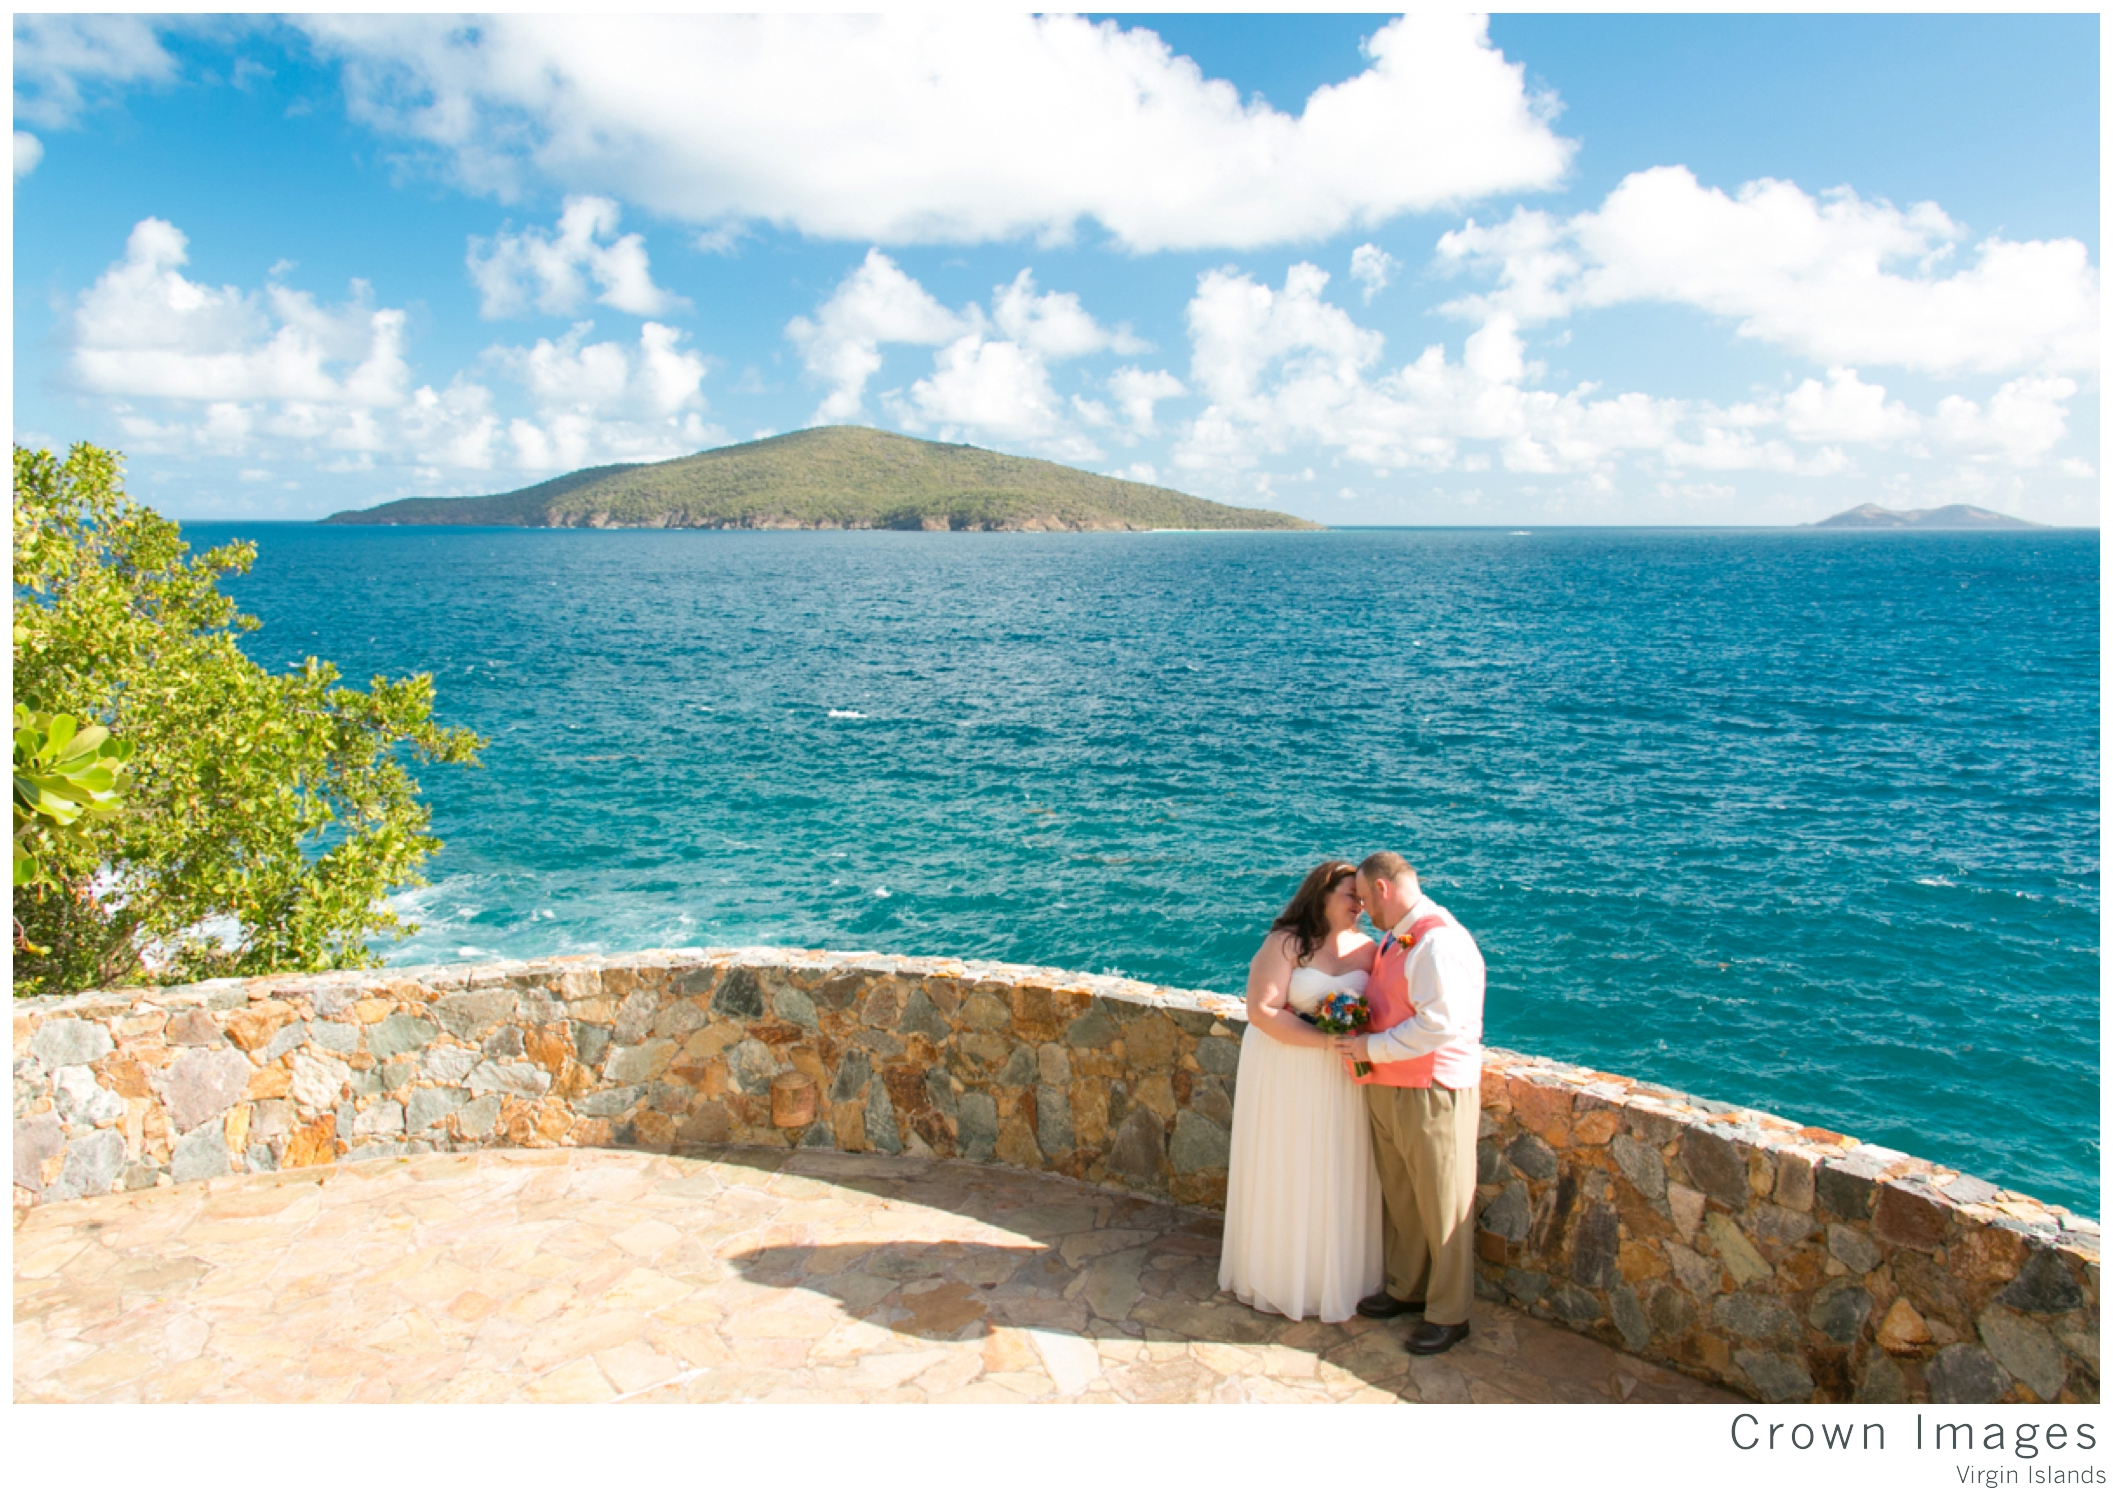 st_thomas_wedding_photographer_crown_images_0794.jpg